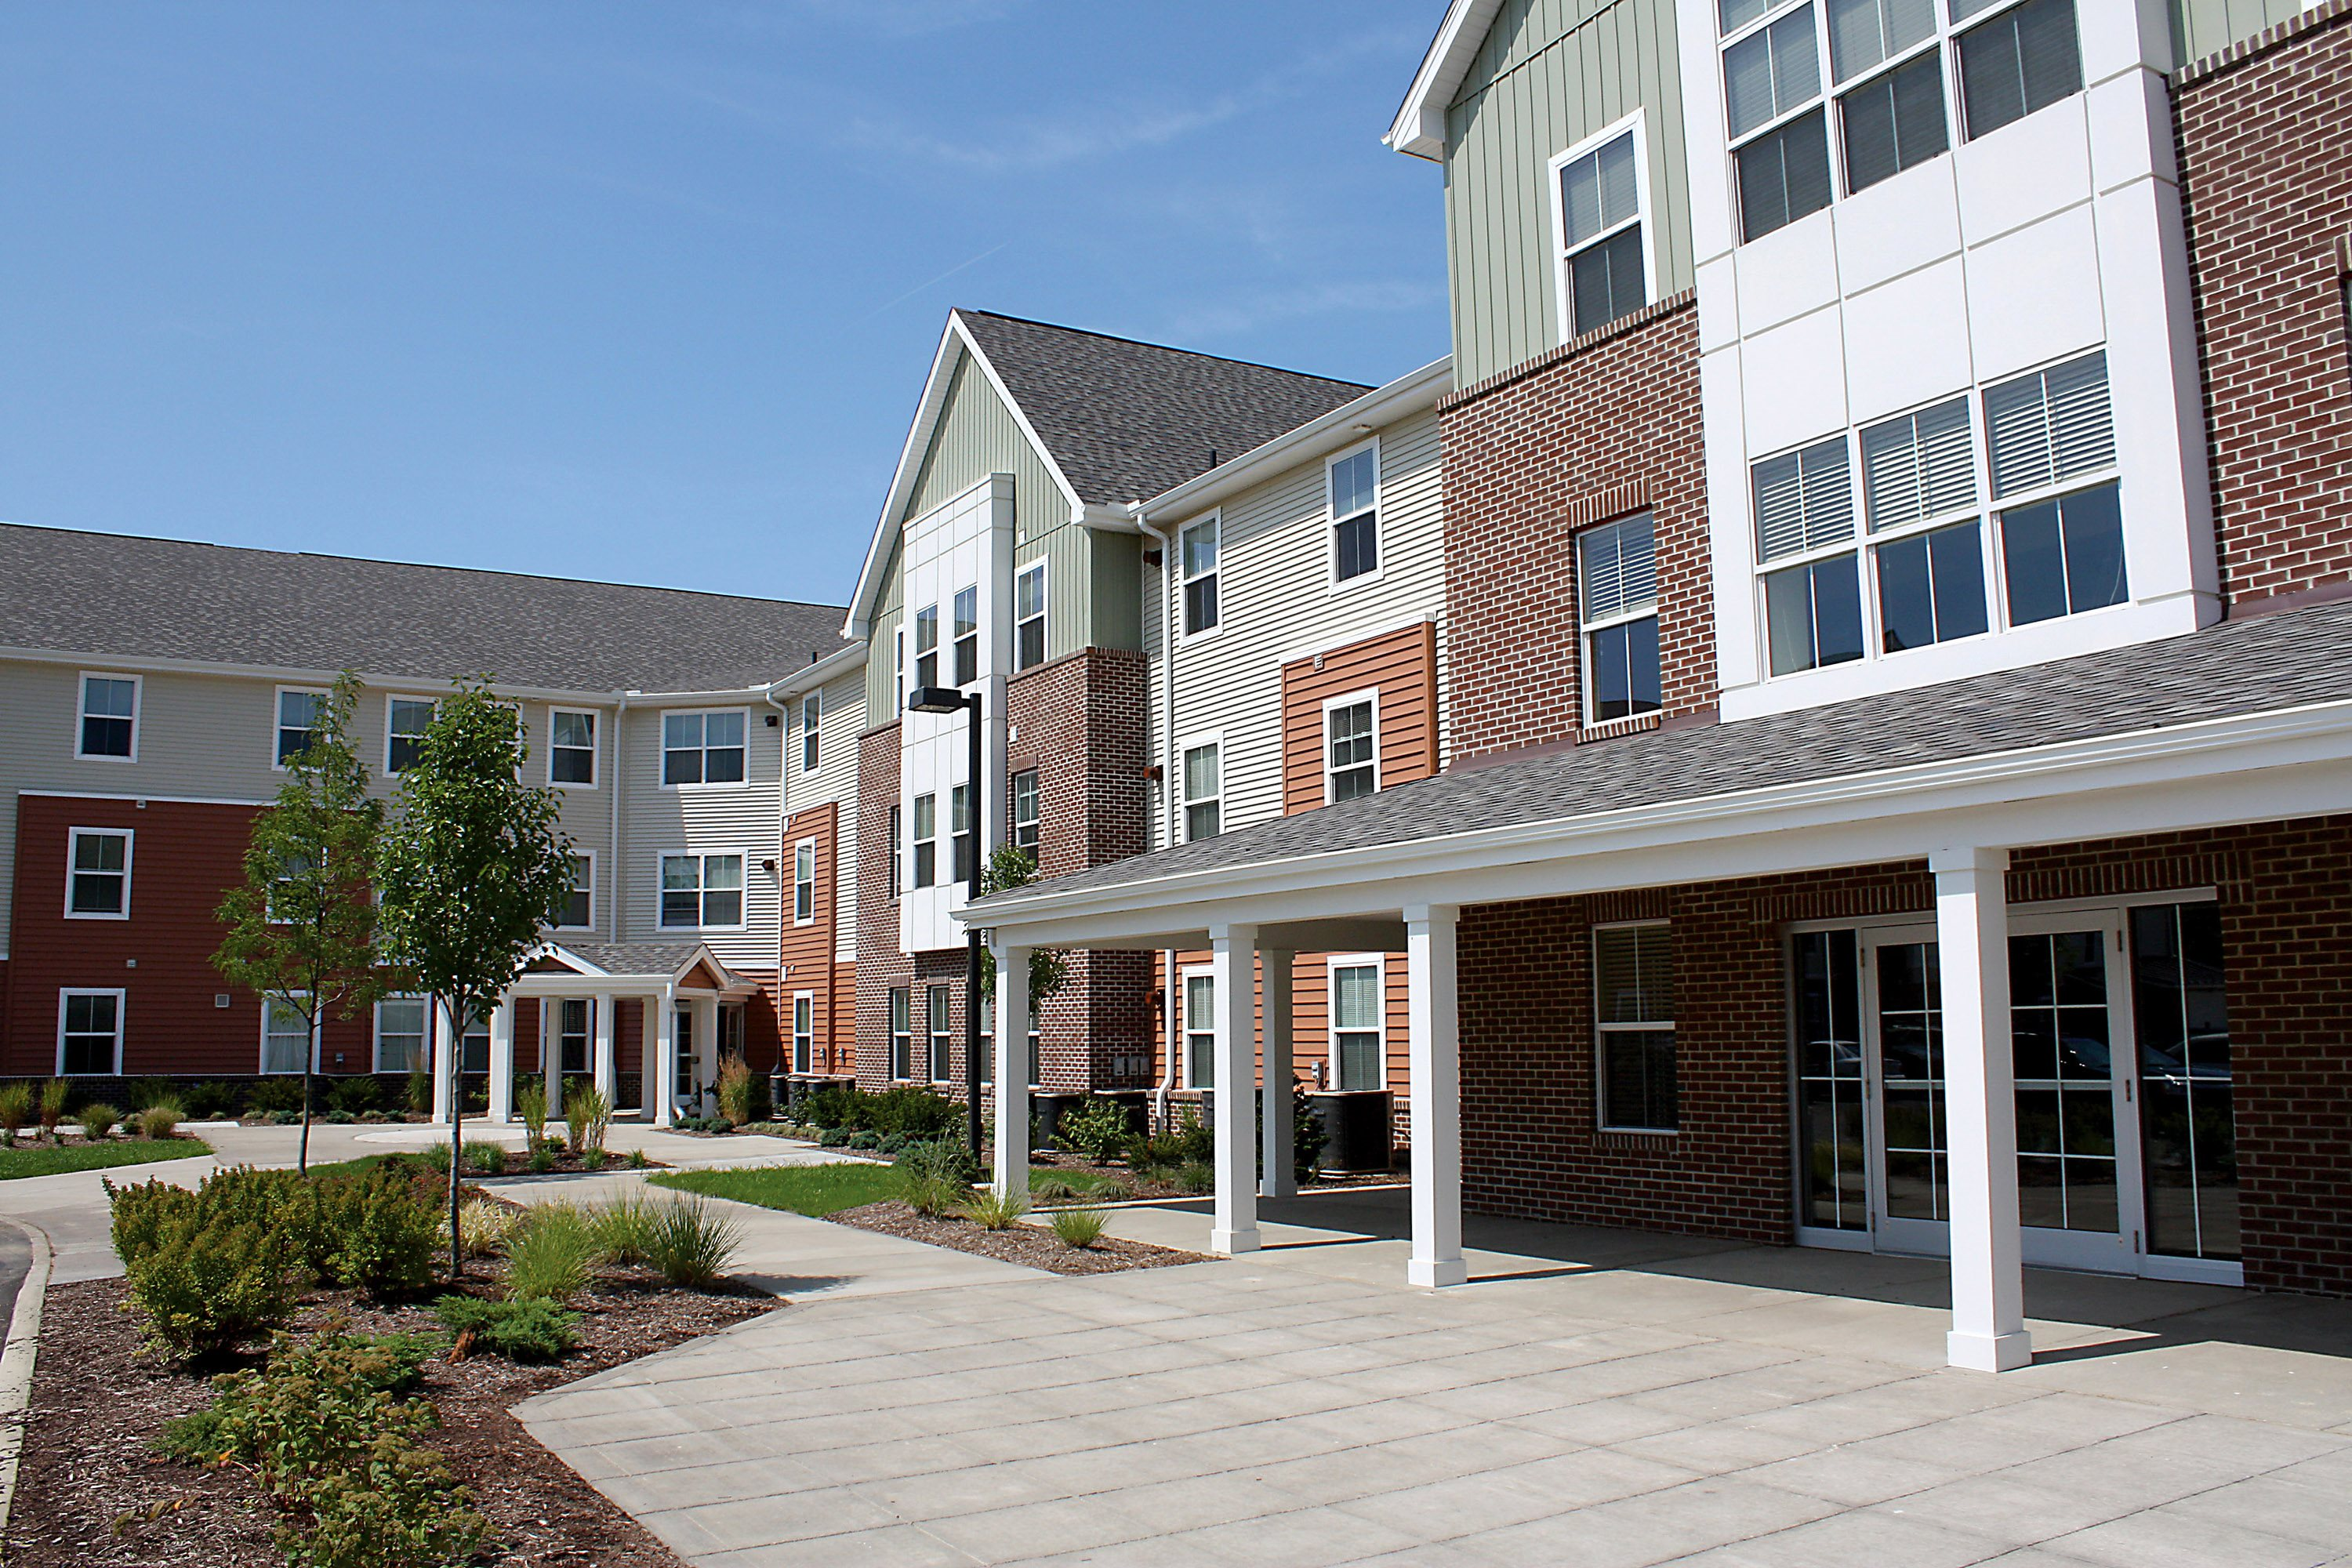 Low Income Apartments in Cleveland, Ohio